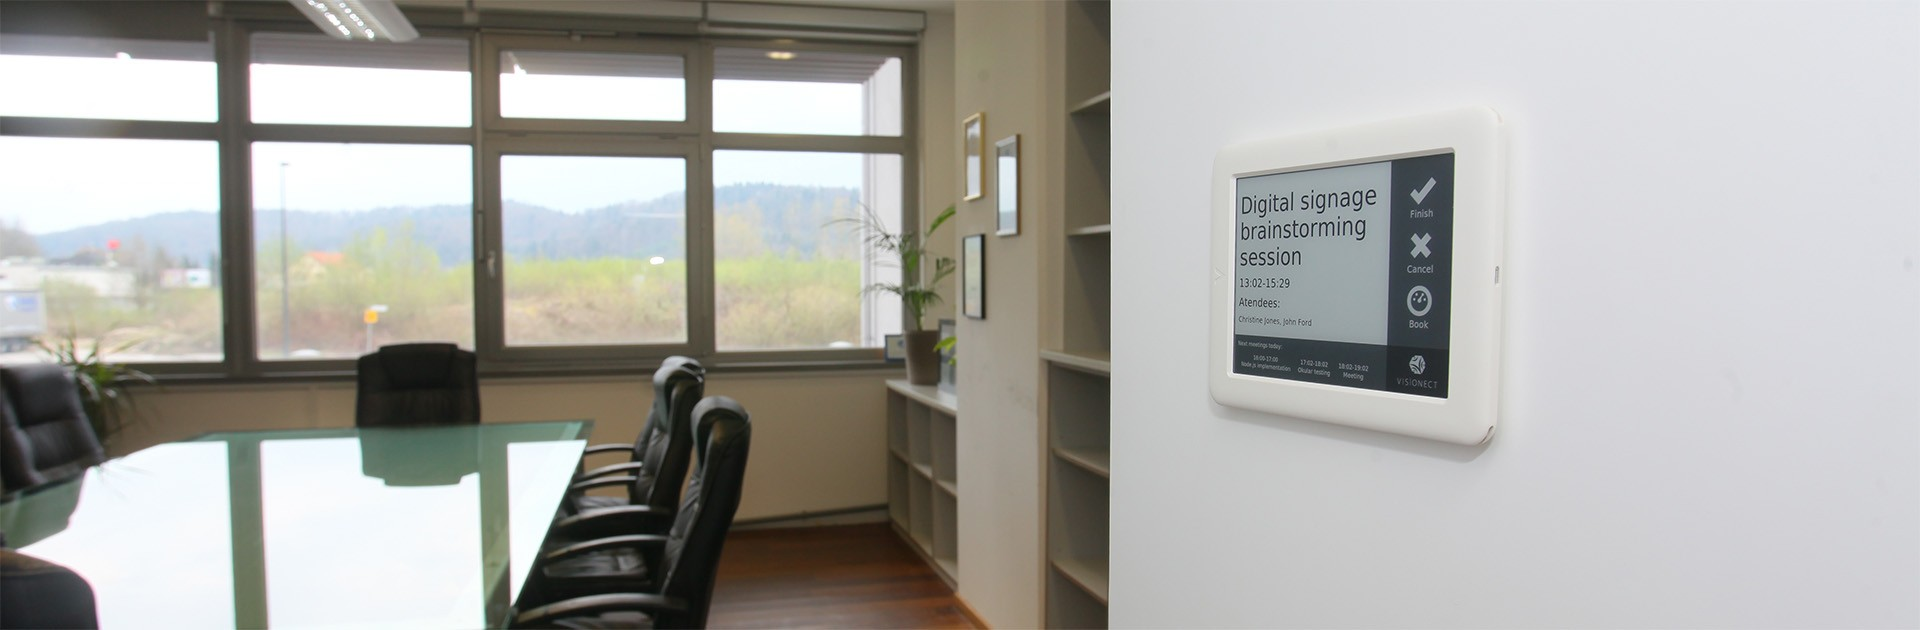 Digital Signage: How we built an e-paper room booking system with Google Calendar